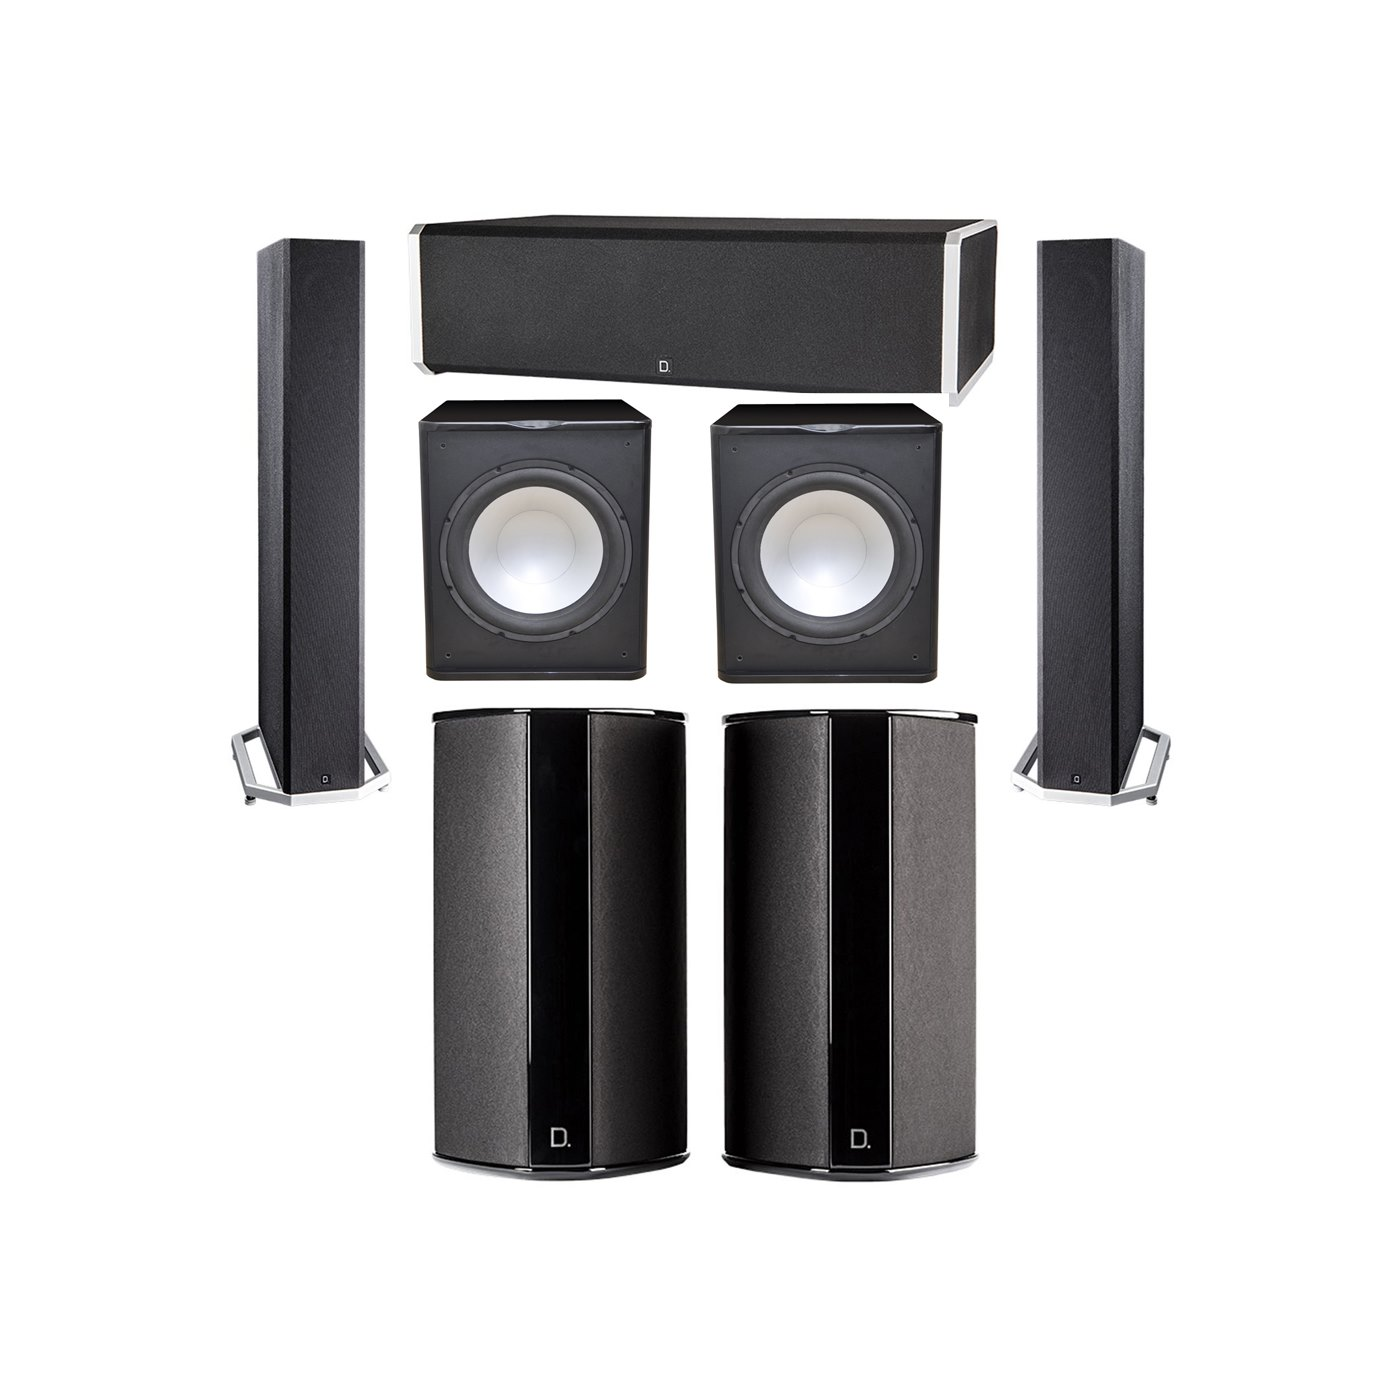 Definitive Technology 5.2 System with 2 BP9040 Tower Speakers, 1 CS9060 Center Channel Speaker, 2 SR9080 Surround Speaker, 2 Premier Acoustic PA-150 Subwoofer